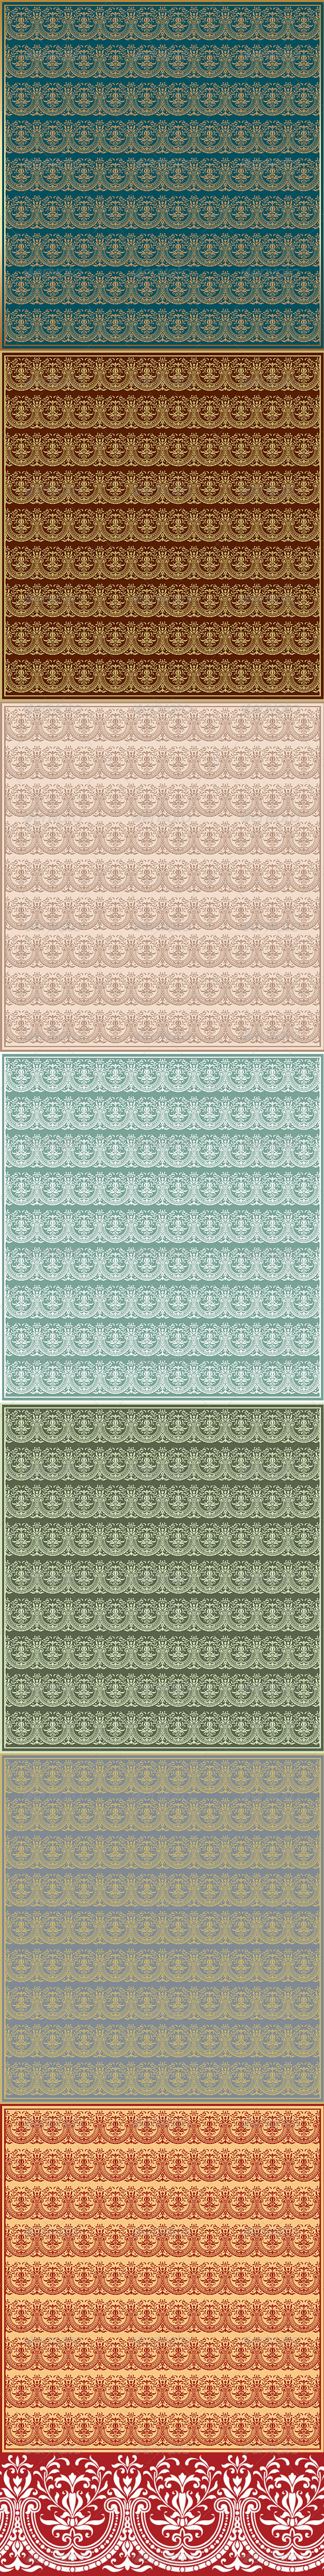 GraphicRiver Royal Pattern 5581289